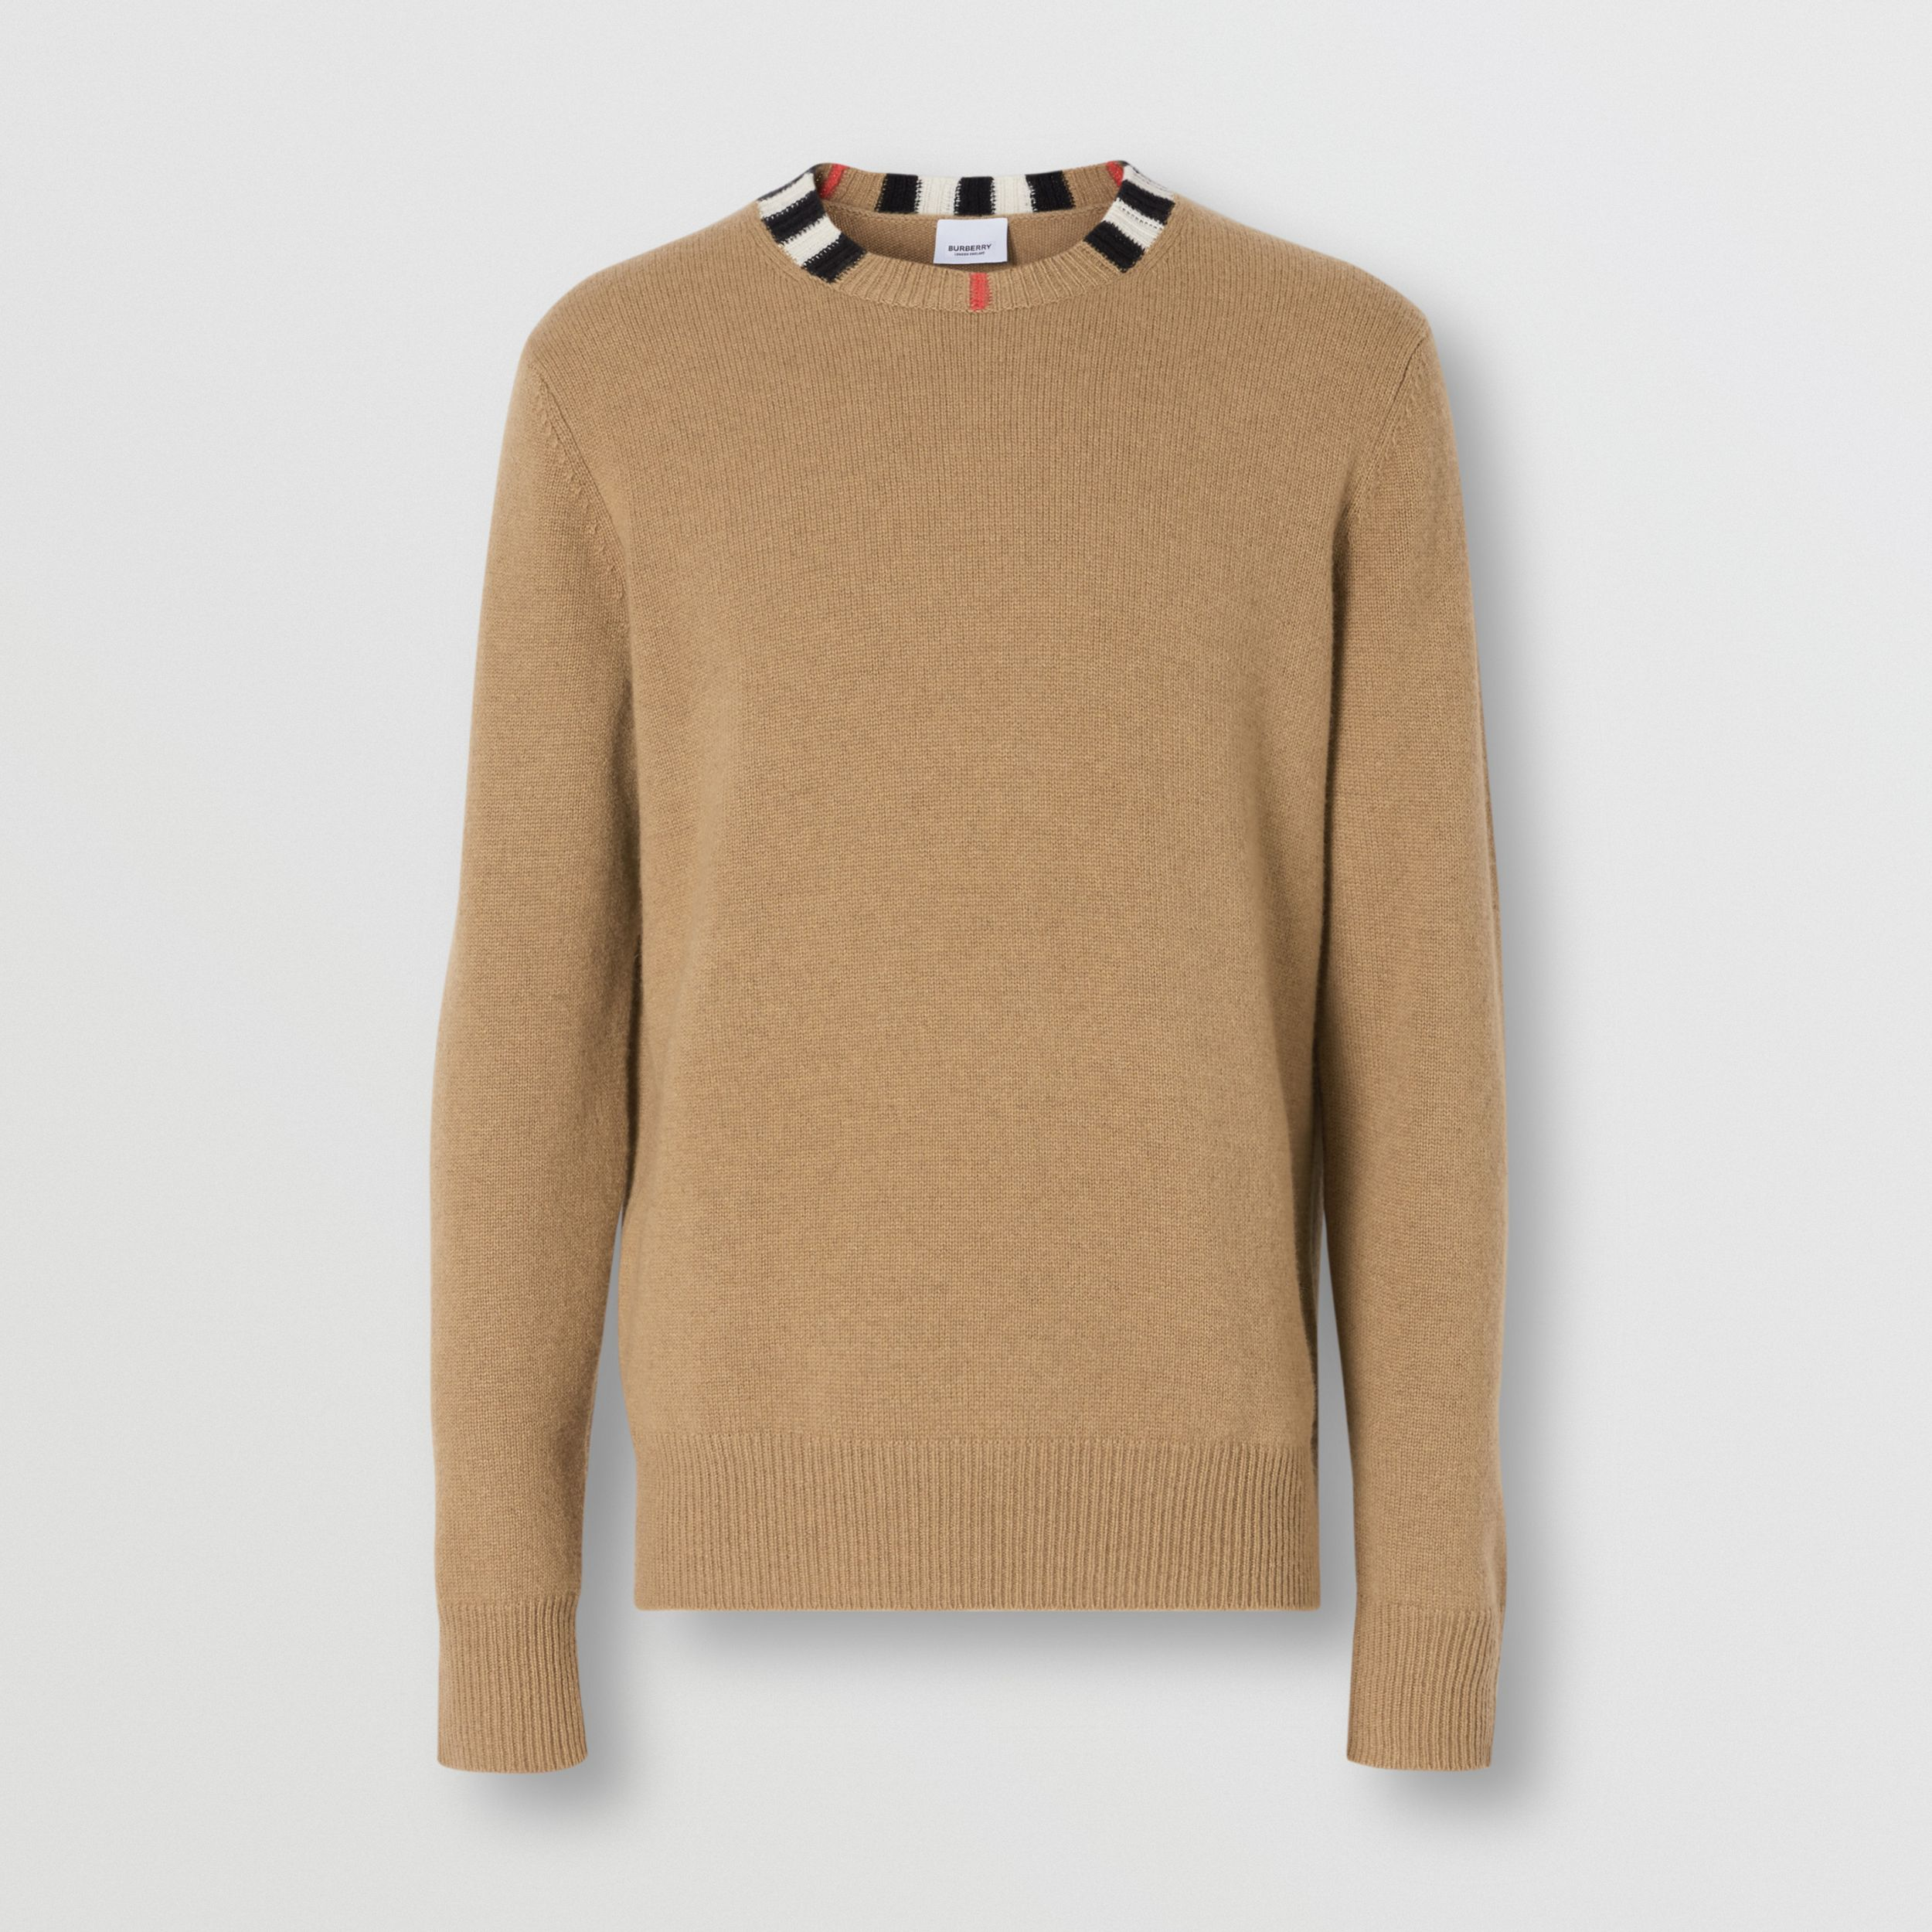 Icon Stripe Trim Cashmere Sweater in Camel - Men | Burberry - 4